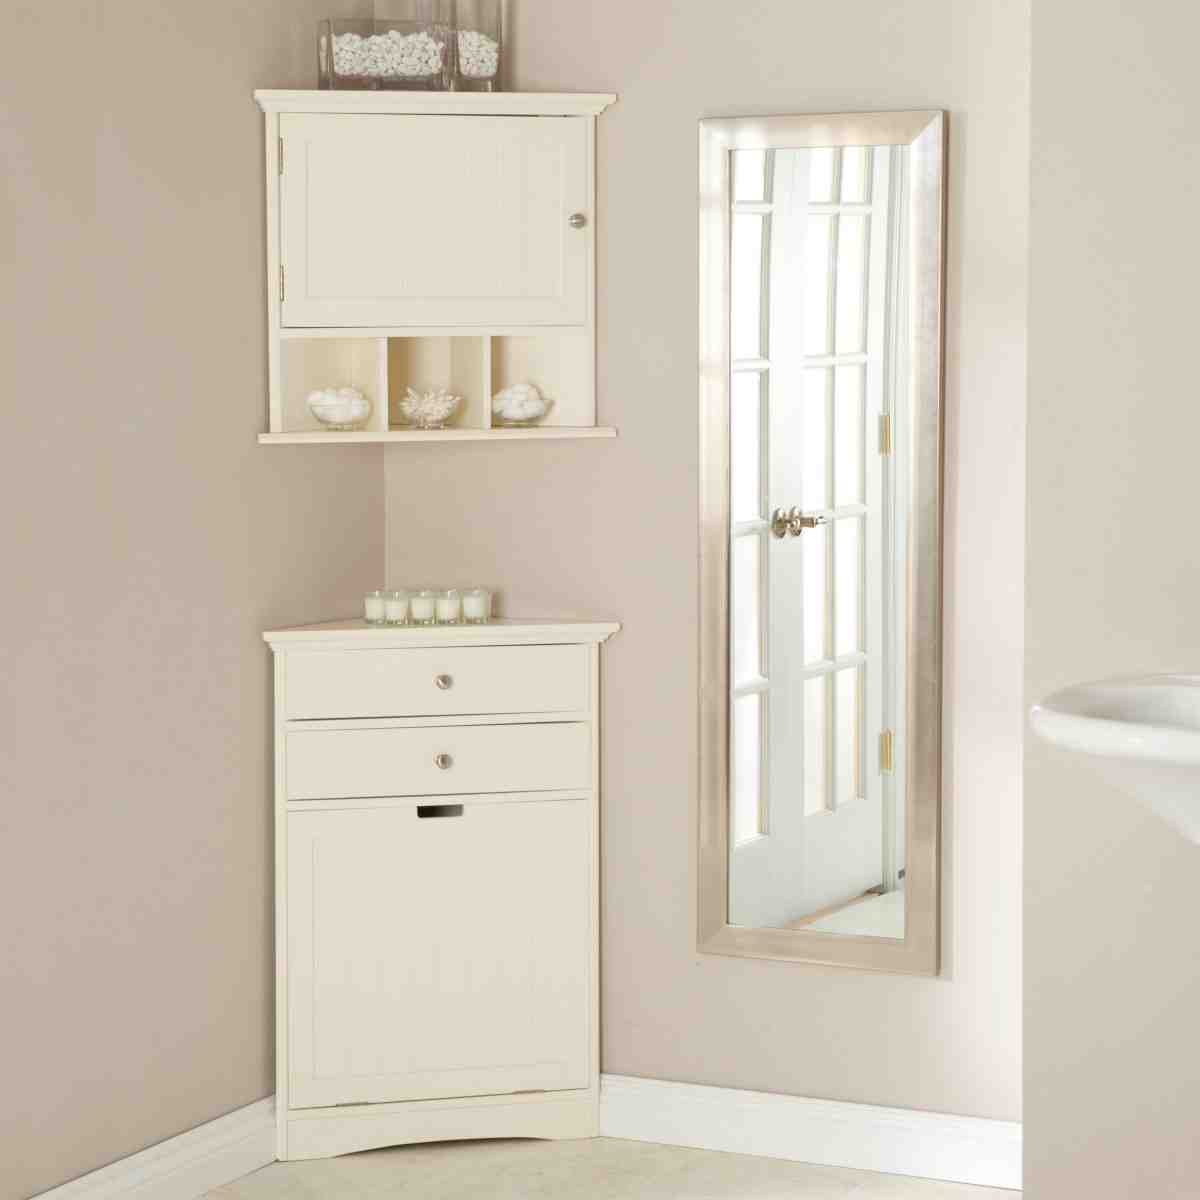 white bathroom corner cabinet home furniture design. Black Bedroom Furniture Sets. Home Design Ideas